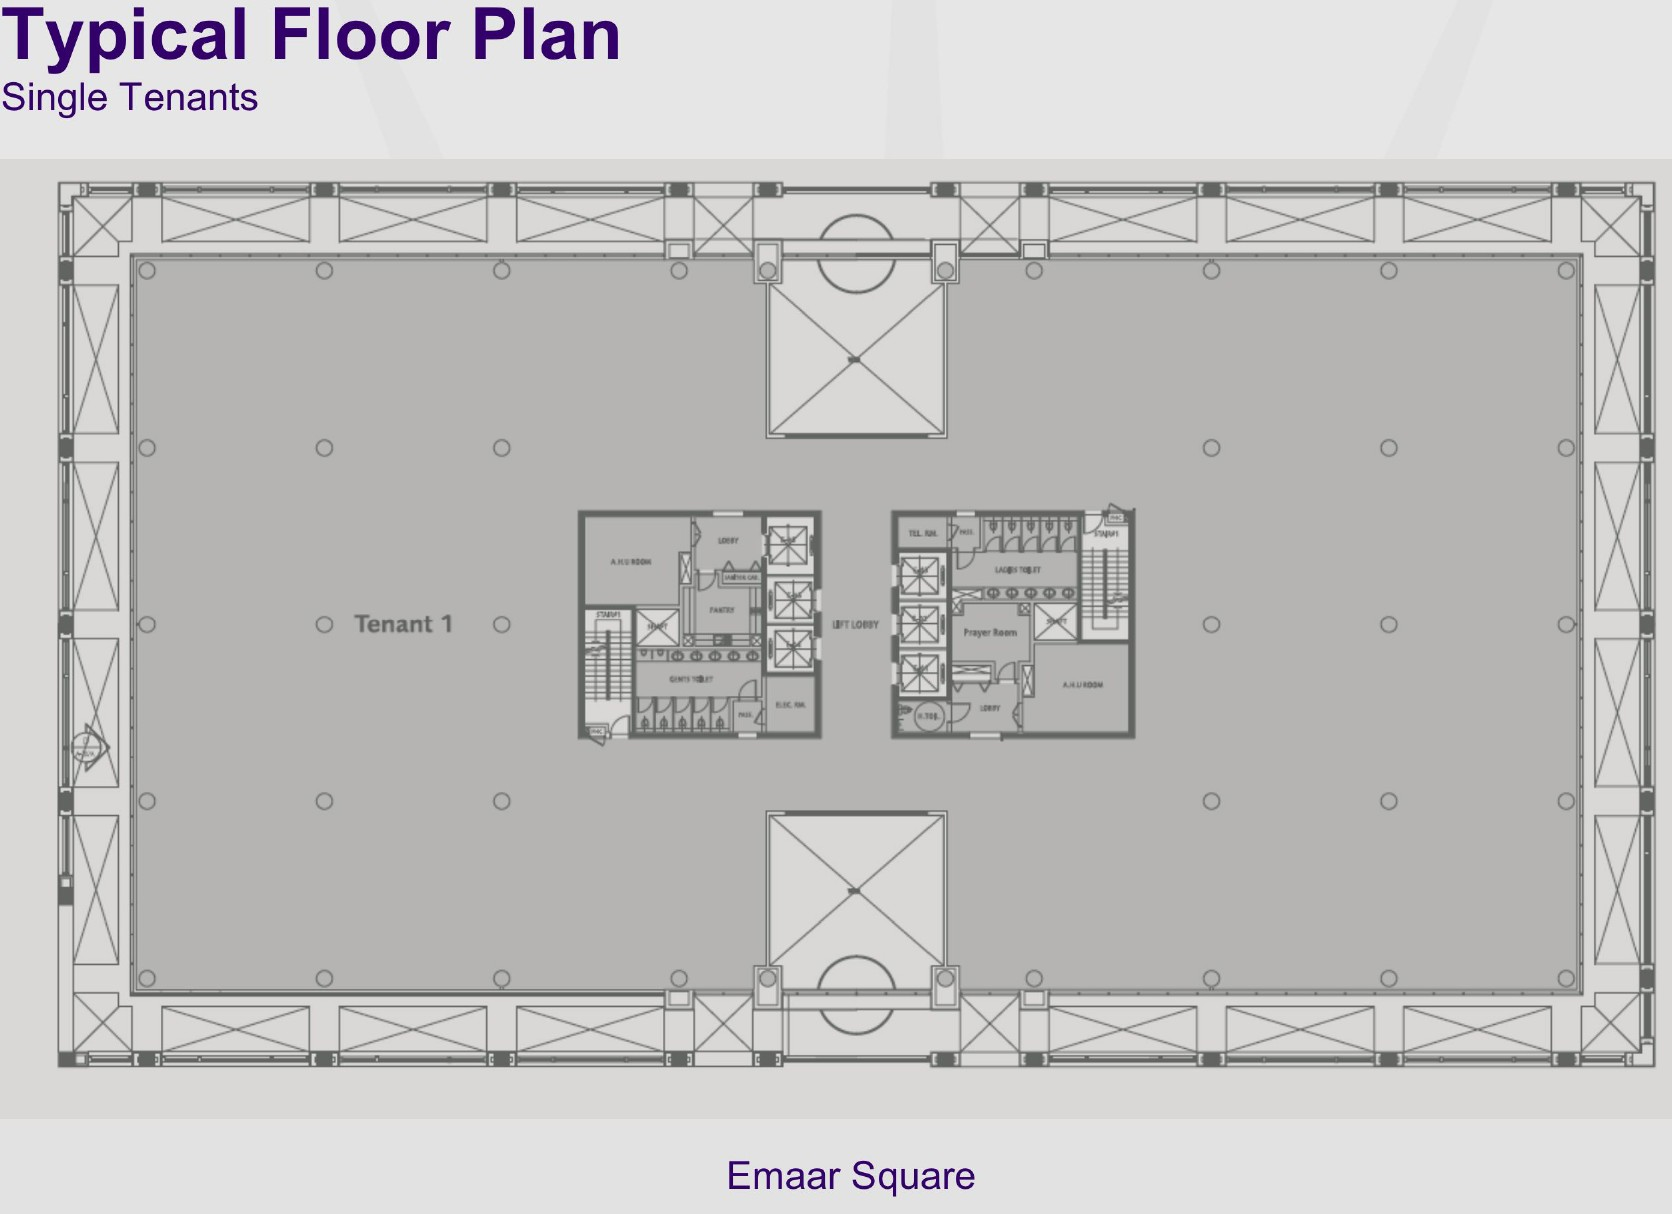 downtown   burj khalifa dubai floor plans as well downtown views in downtown dubai emaar properties likewise spotting feng shui challenges in floor plans part 2 open spaces also standpoint in downtown dubai emaar properties likewise apartment business plan. on standpoint b floor plans